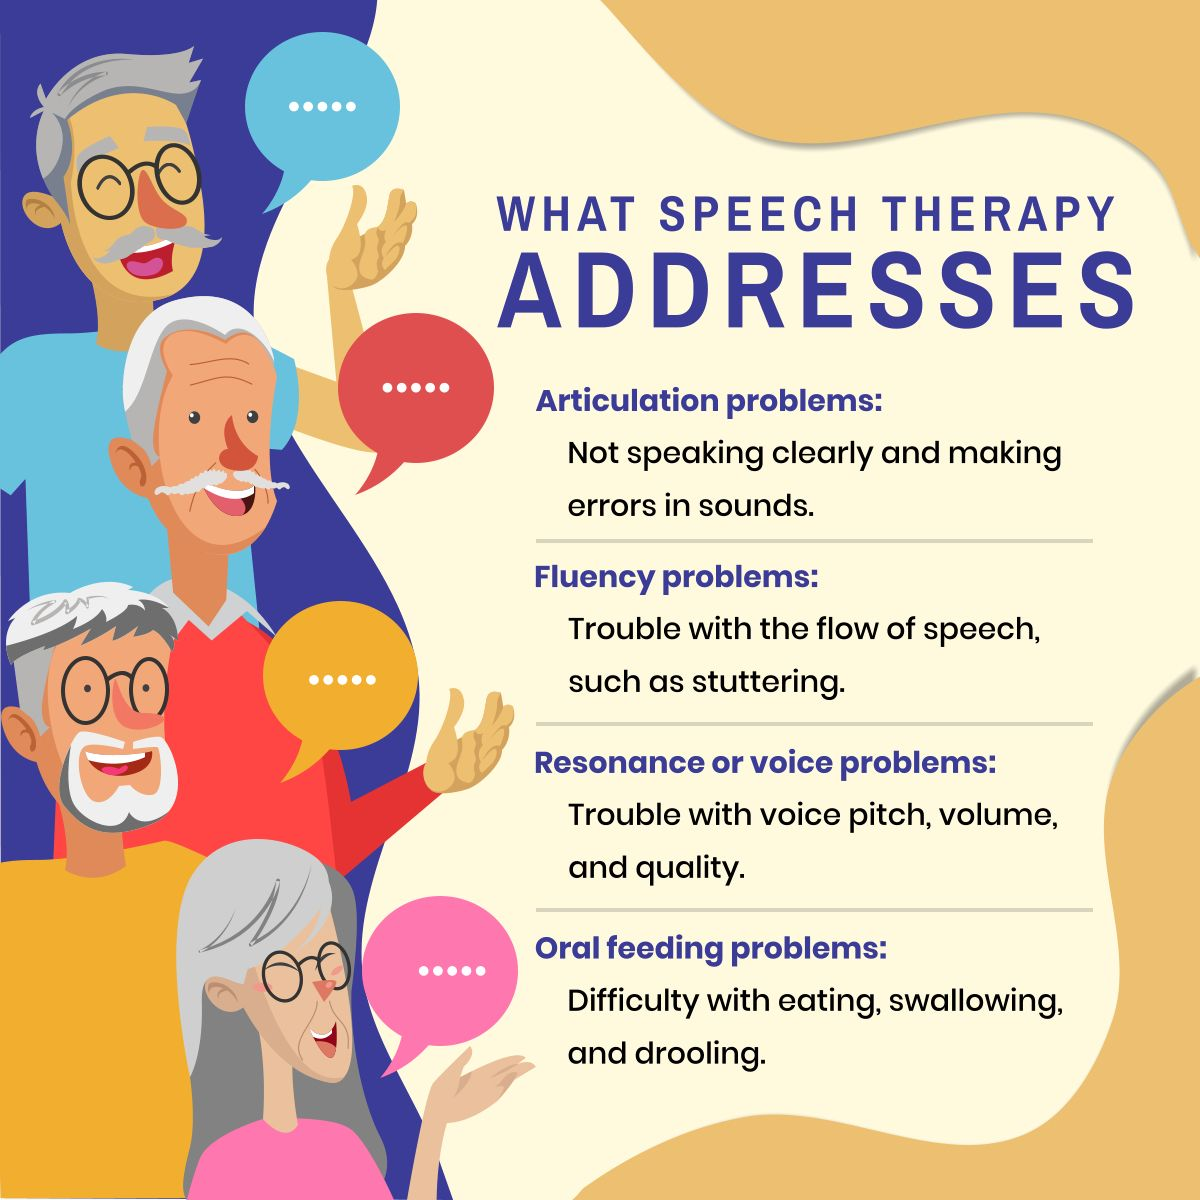 Home Home health services, Home health, Speech therapy